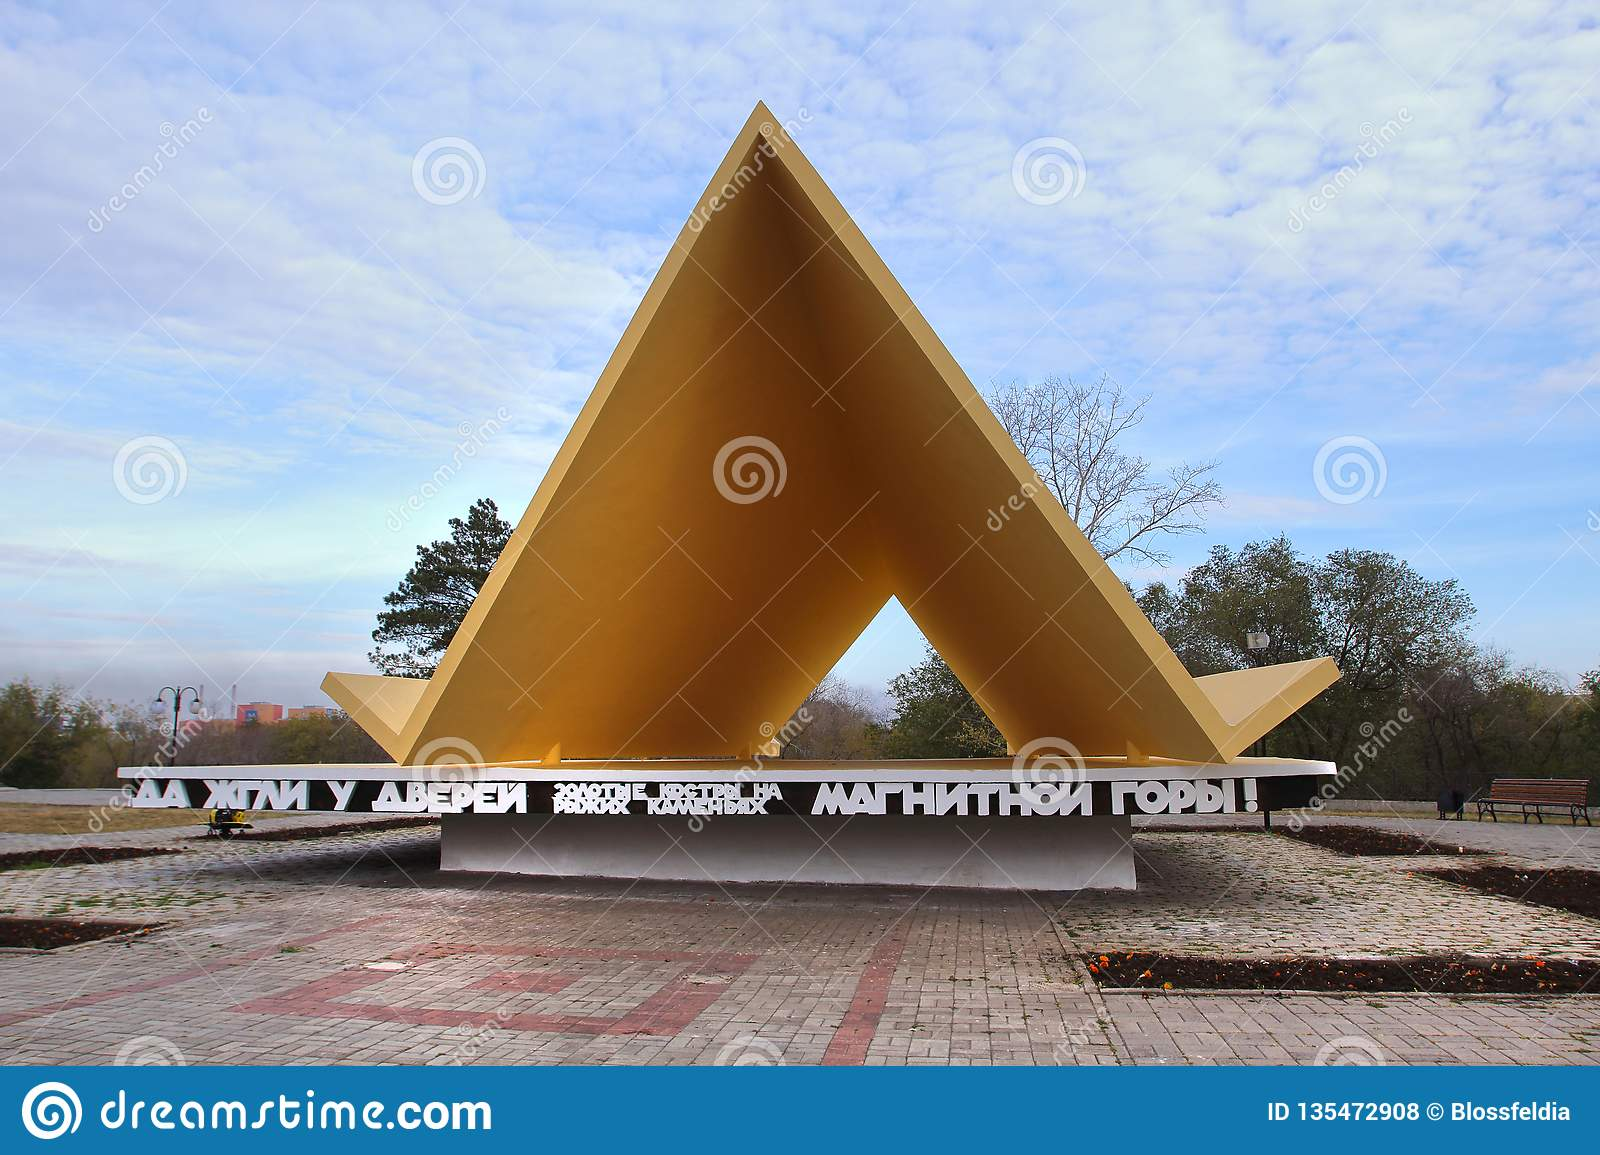 `The First Tent` - a monument at the entrance to the Veterans Park of Magnitogorsk city